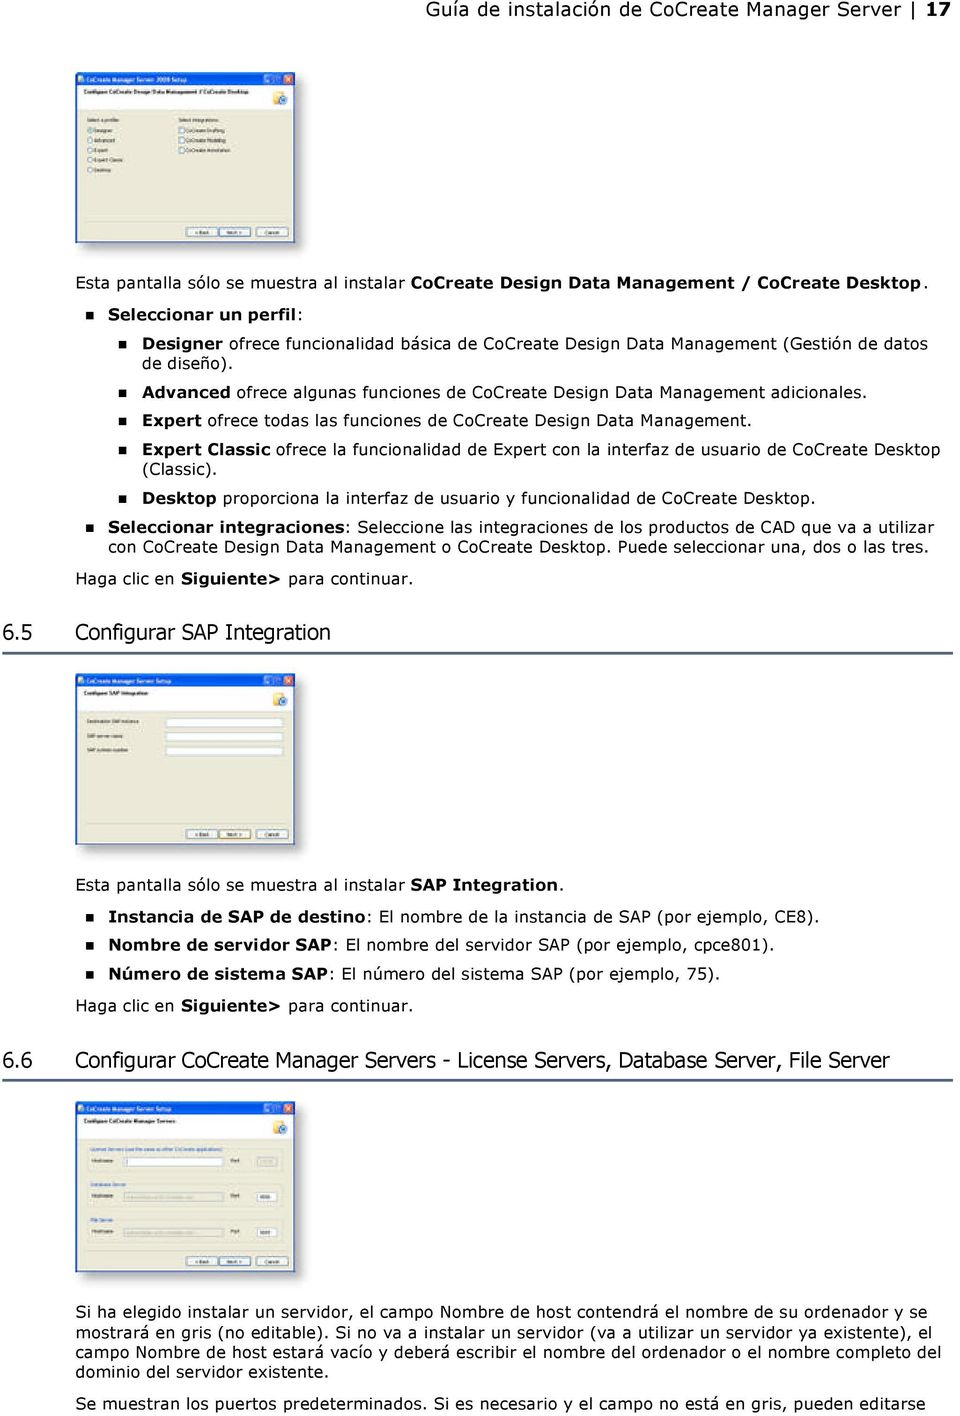 Advanced ofrece algunas funciones de CoCreate Design Data Management adicionales. Expert ofrece todas las funciones de CoCreate Design Data Management.